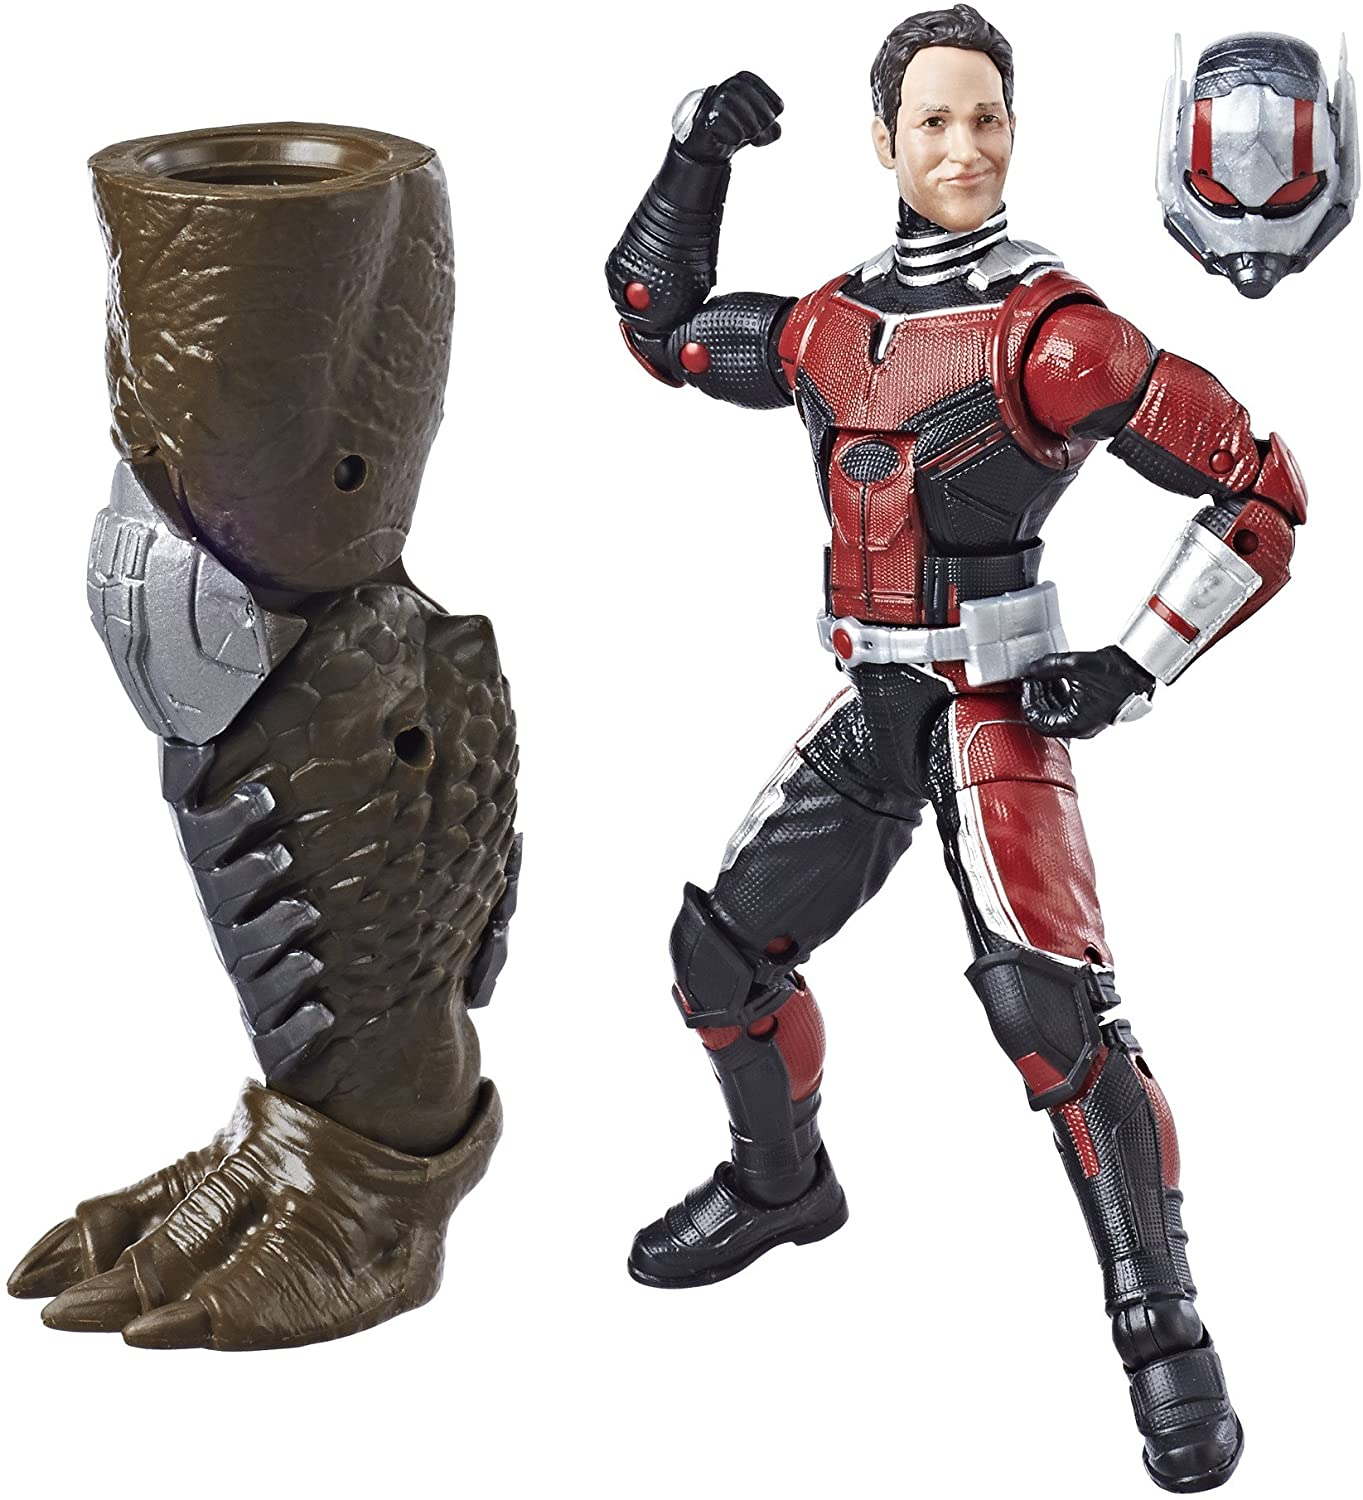 Marvel Legends - Cull Obsidian BAF - Ant-Man and the Wasp - Ant-Man Action Figure (E1581)